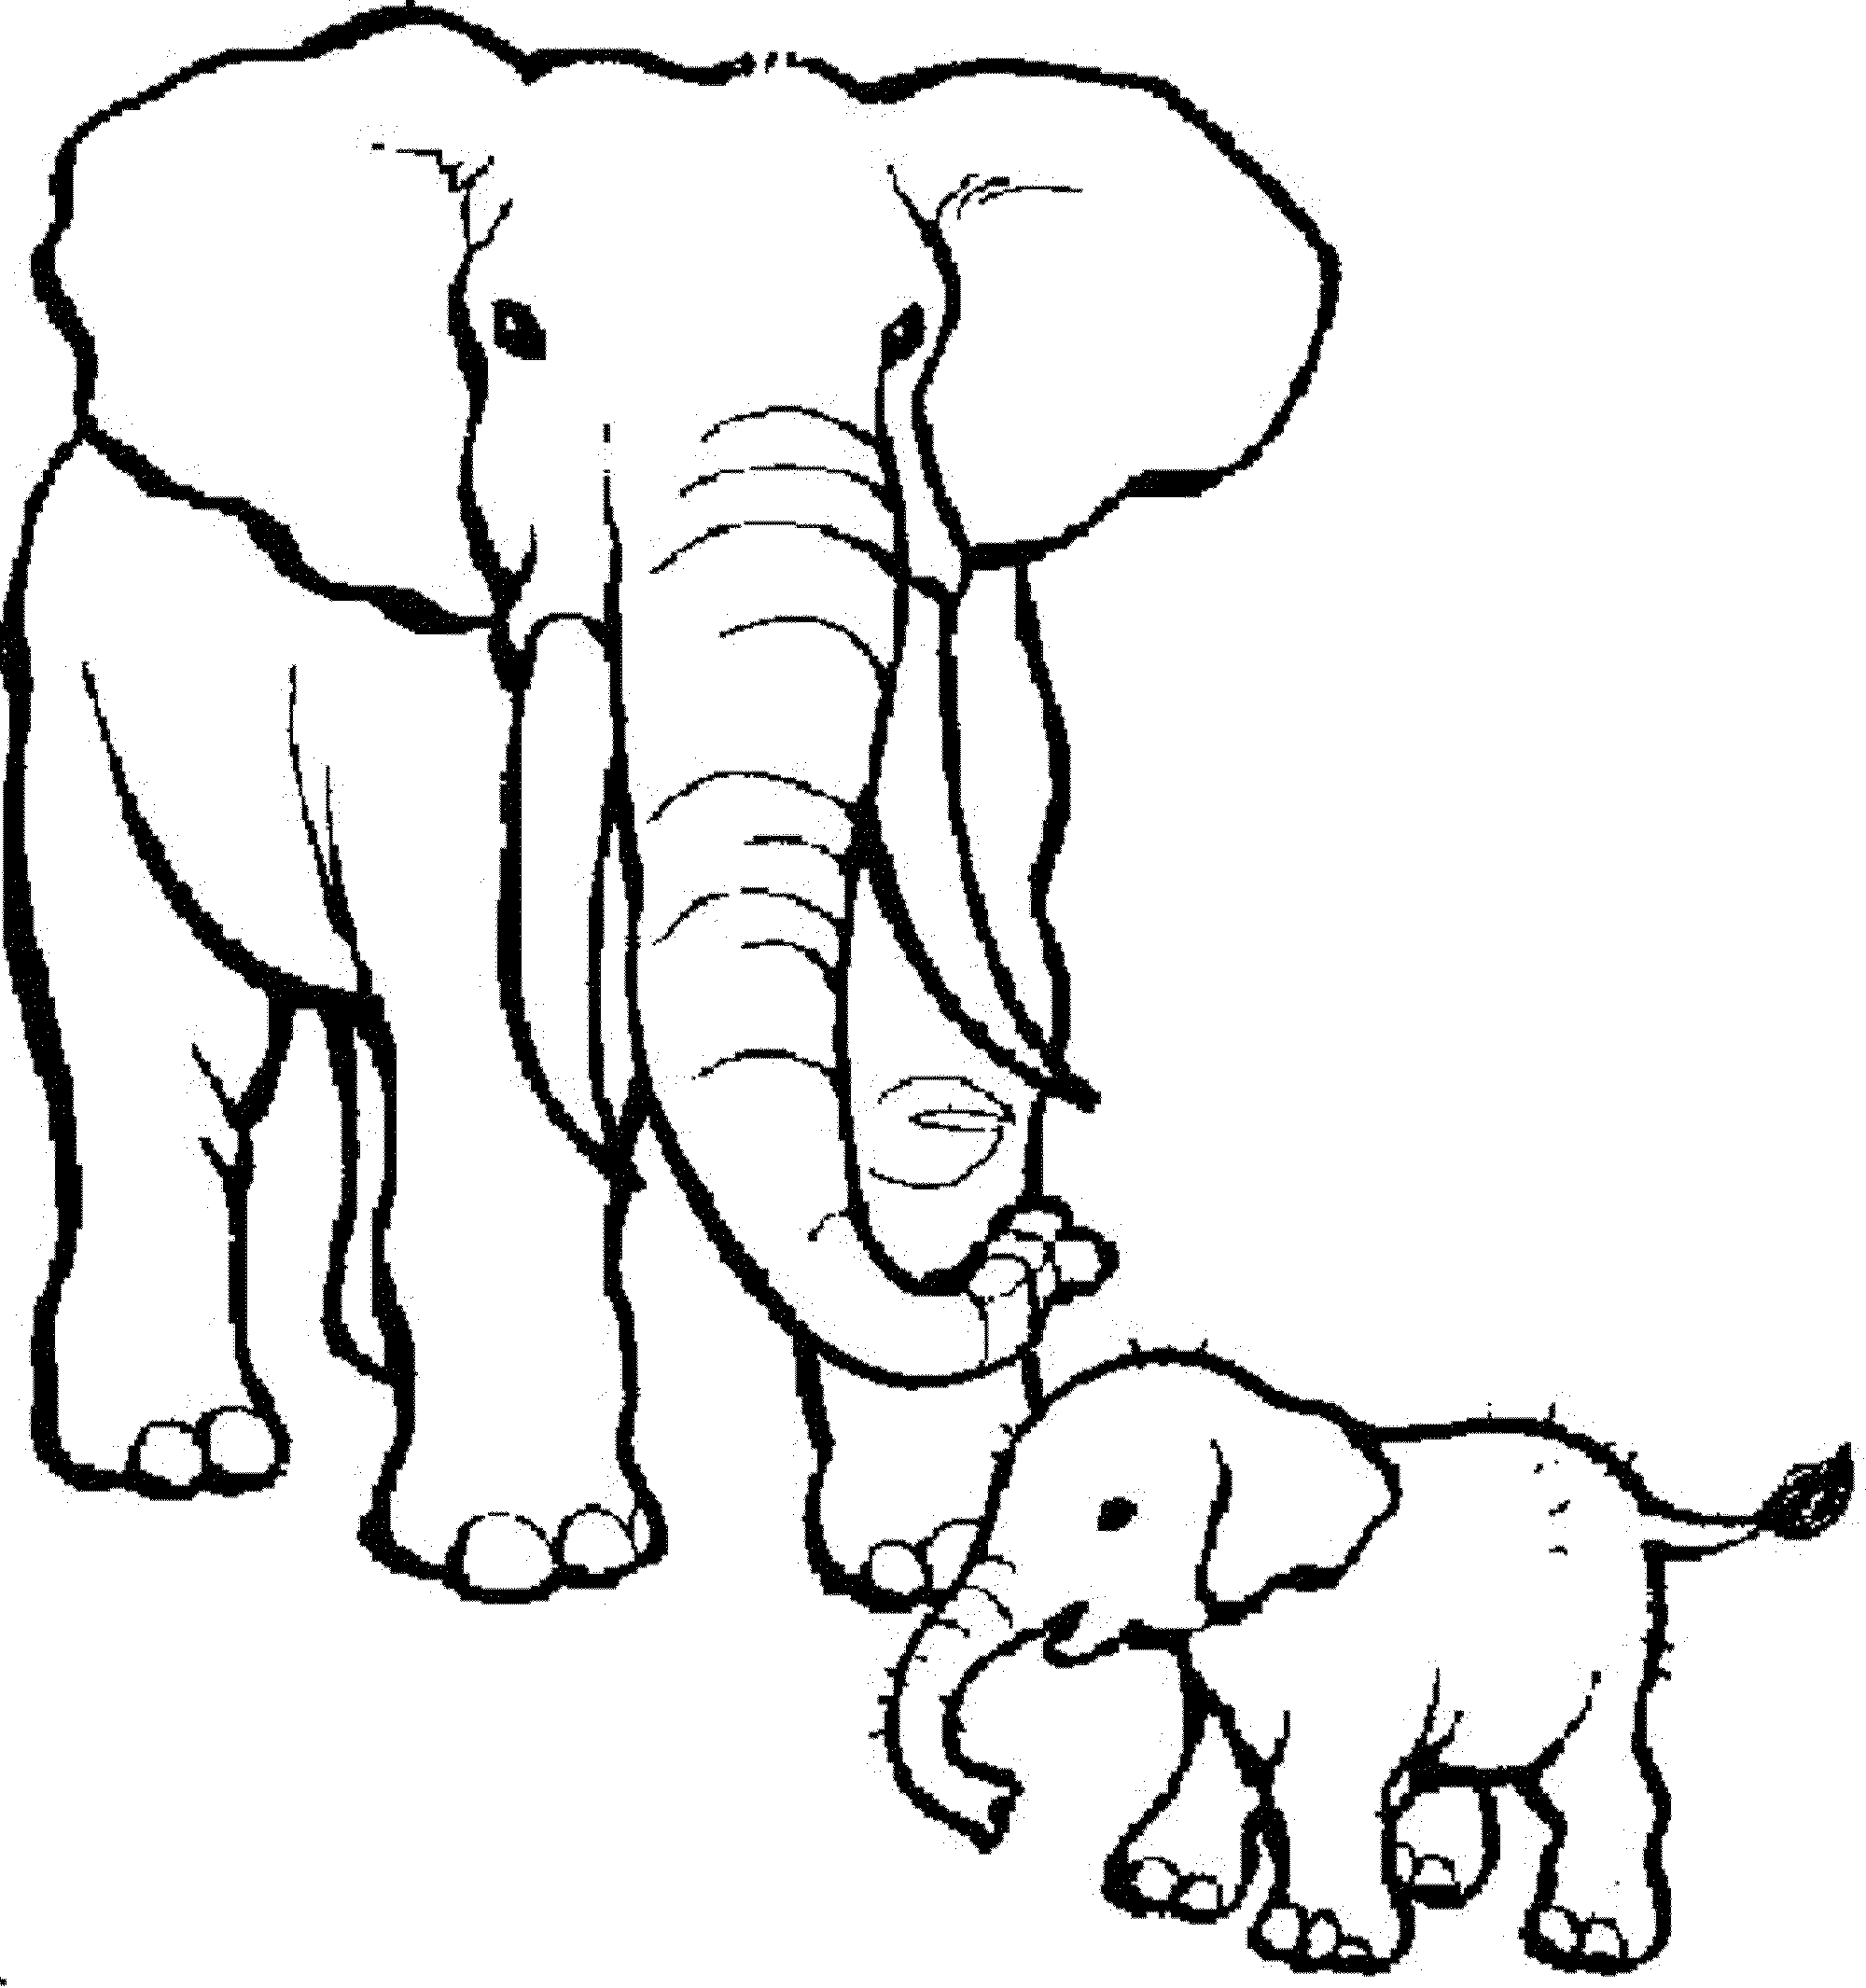 colouring pages of elephant elegant drawing of an elephant elephants adult coloring pages elephant of colouring